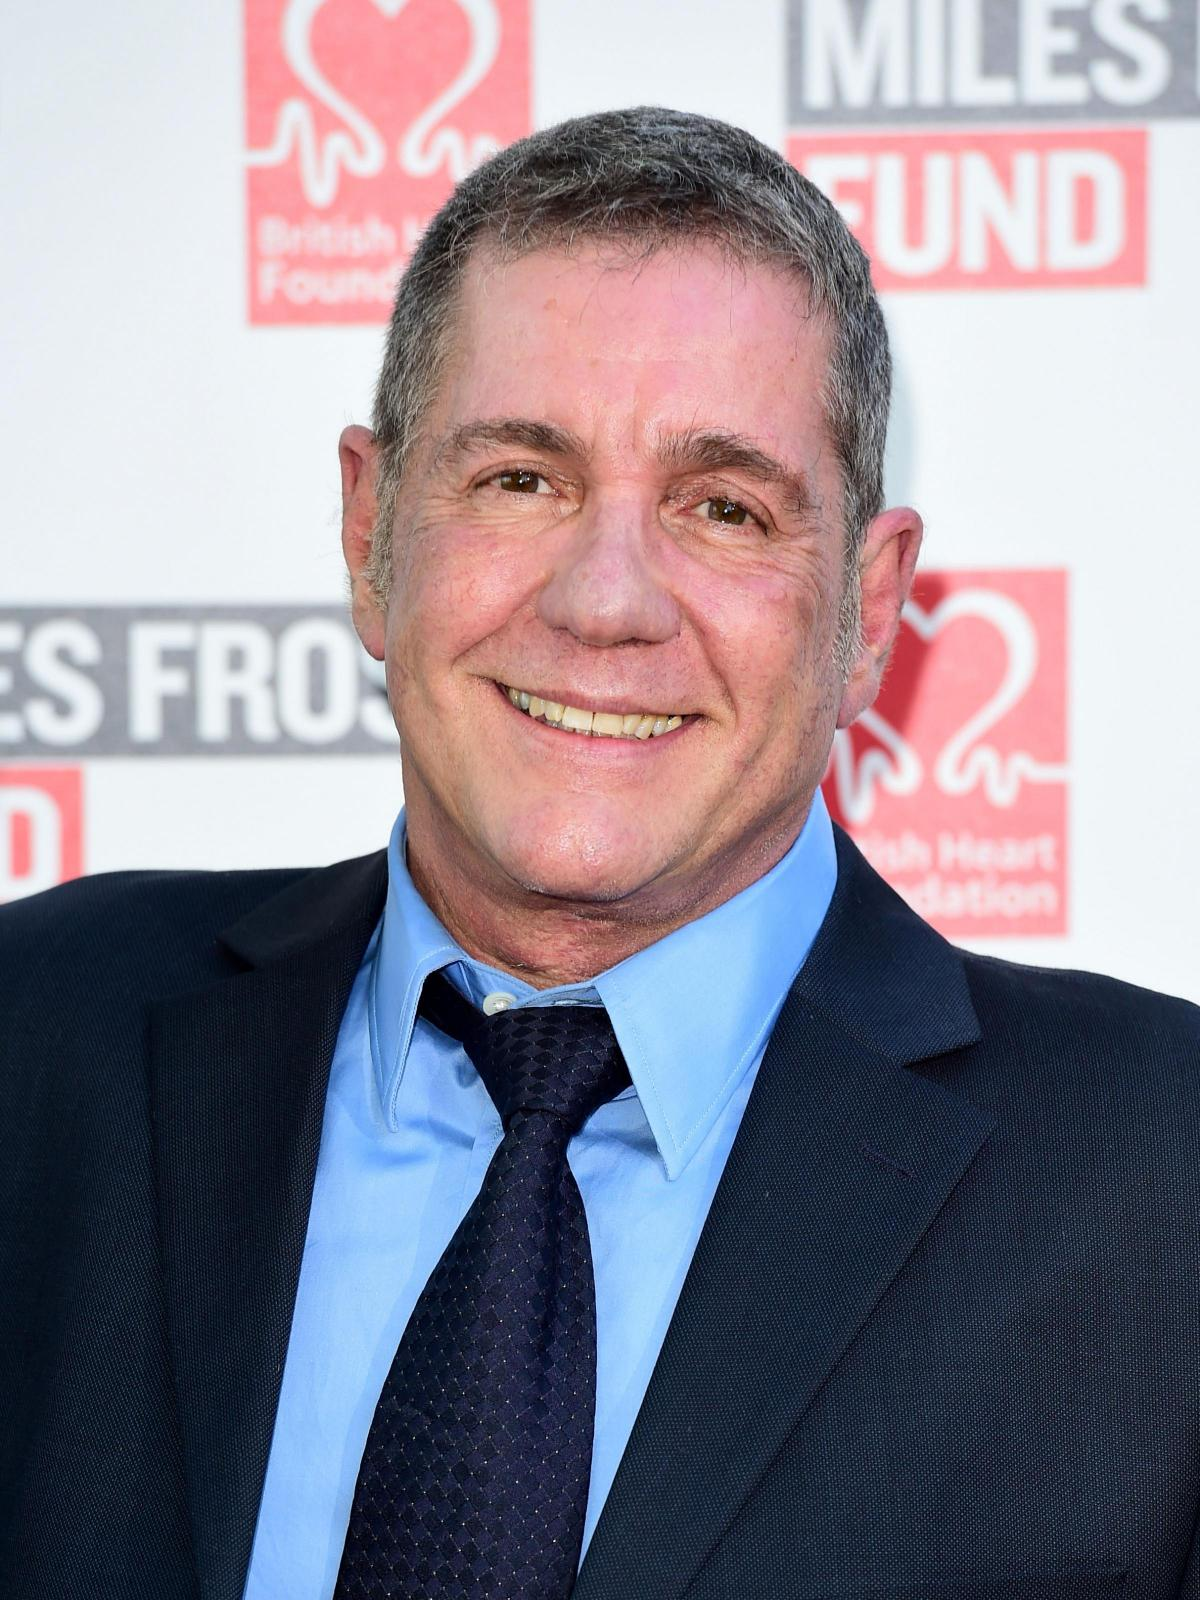 Dale Winton attending the Frost Summer Party Fundraiser in London. The presenter has died at the age of 62 Photo Ian West/PA Wire.